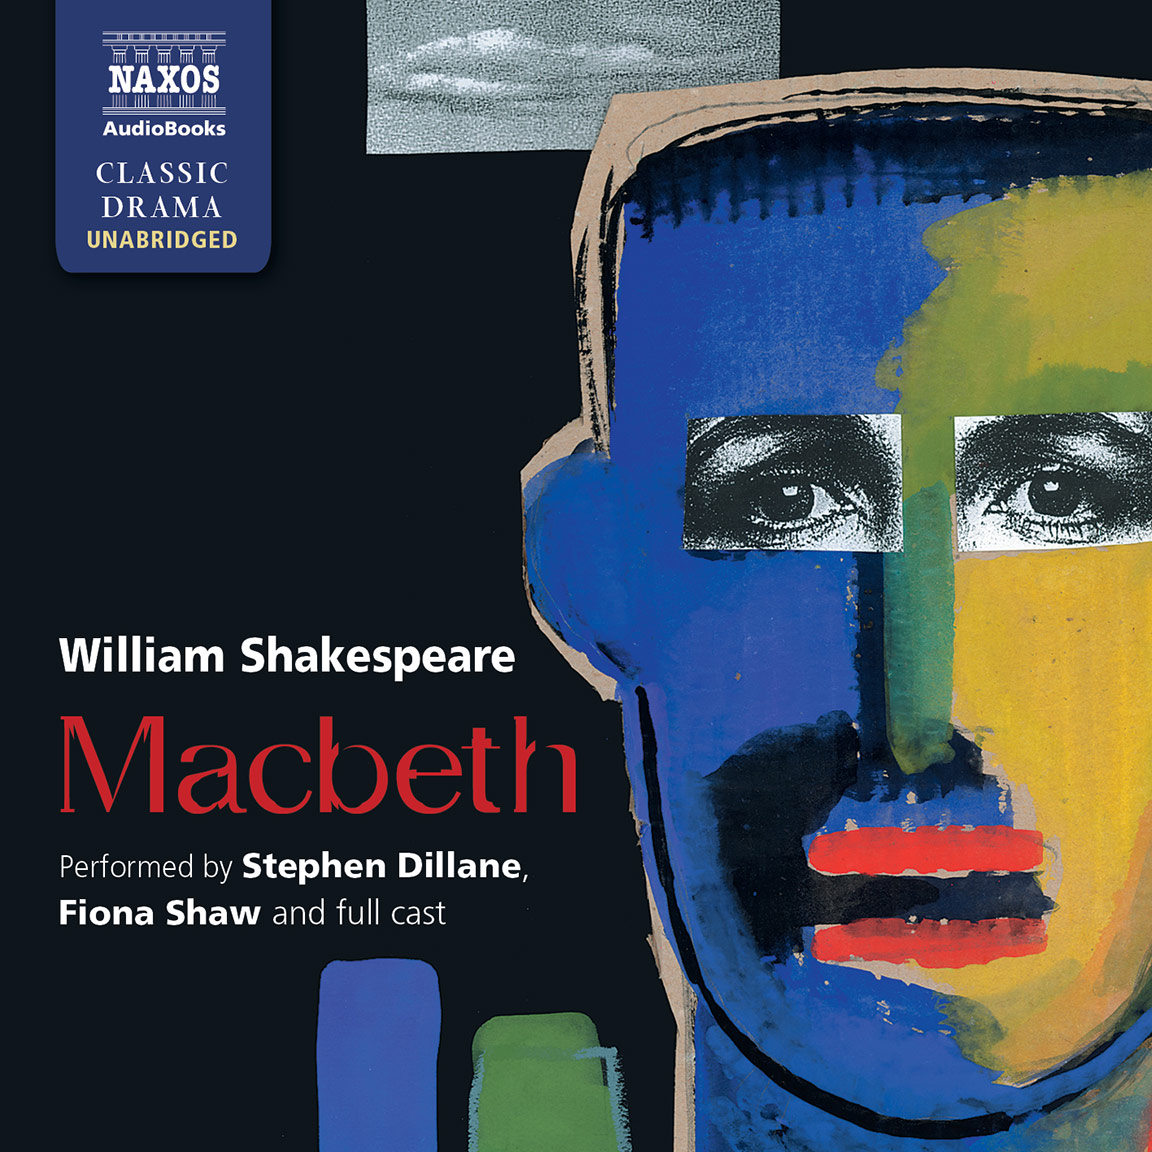 soliloquies in macbeth by william shakespeare